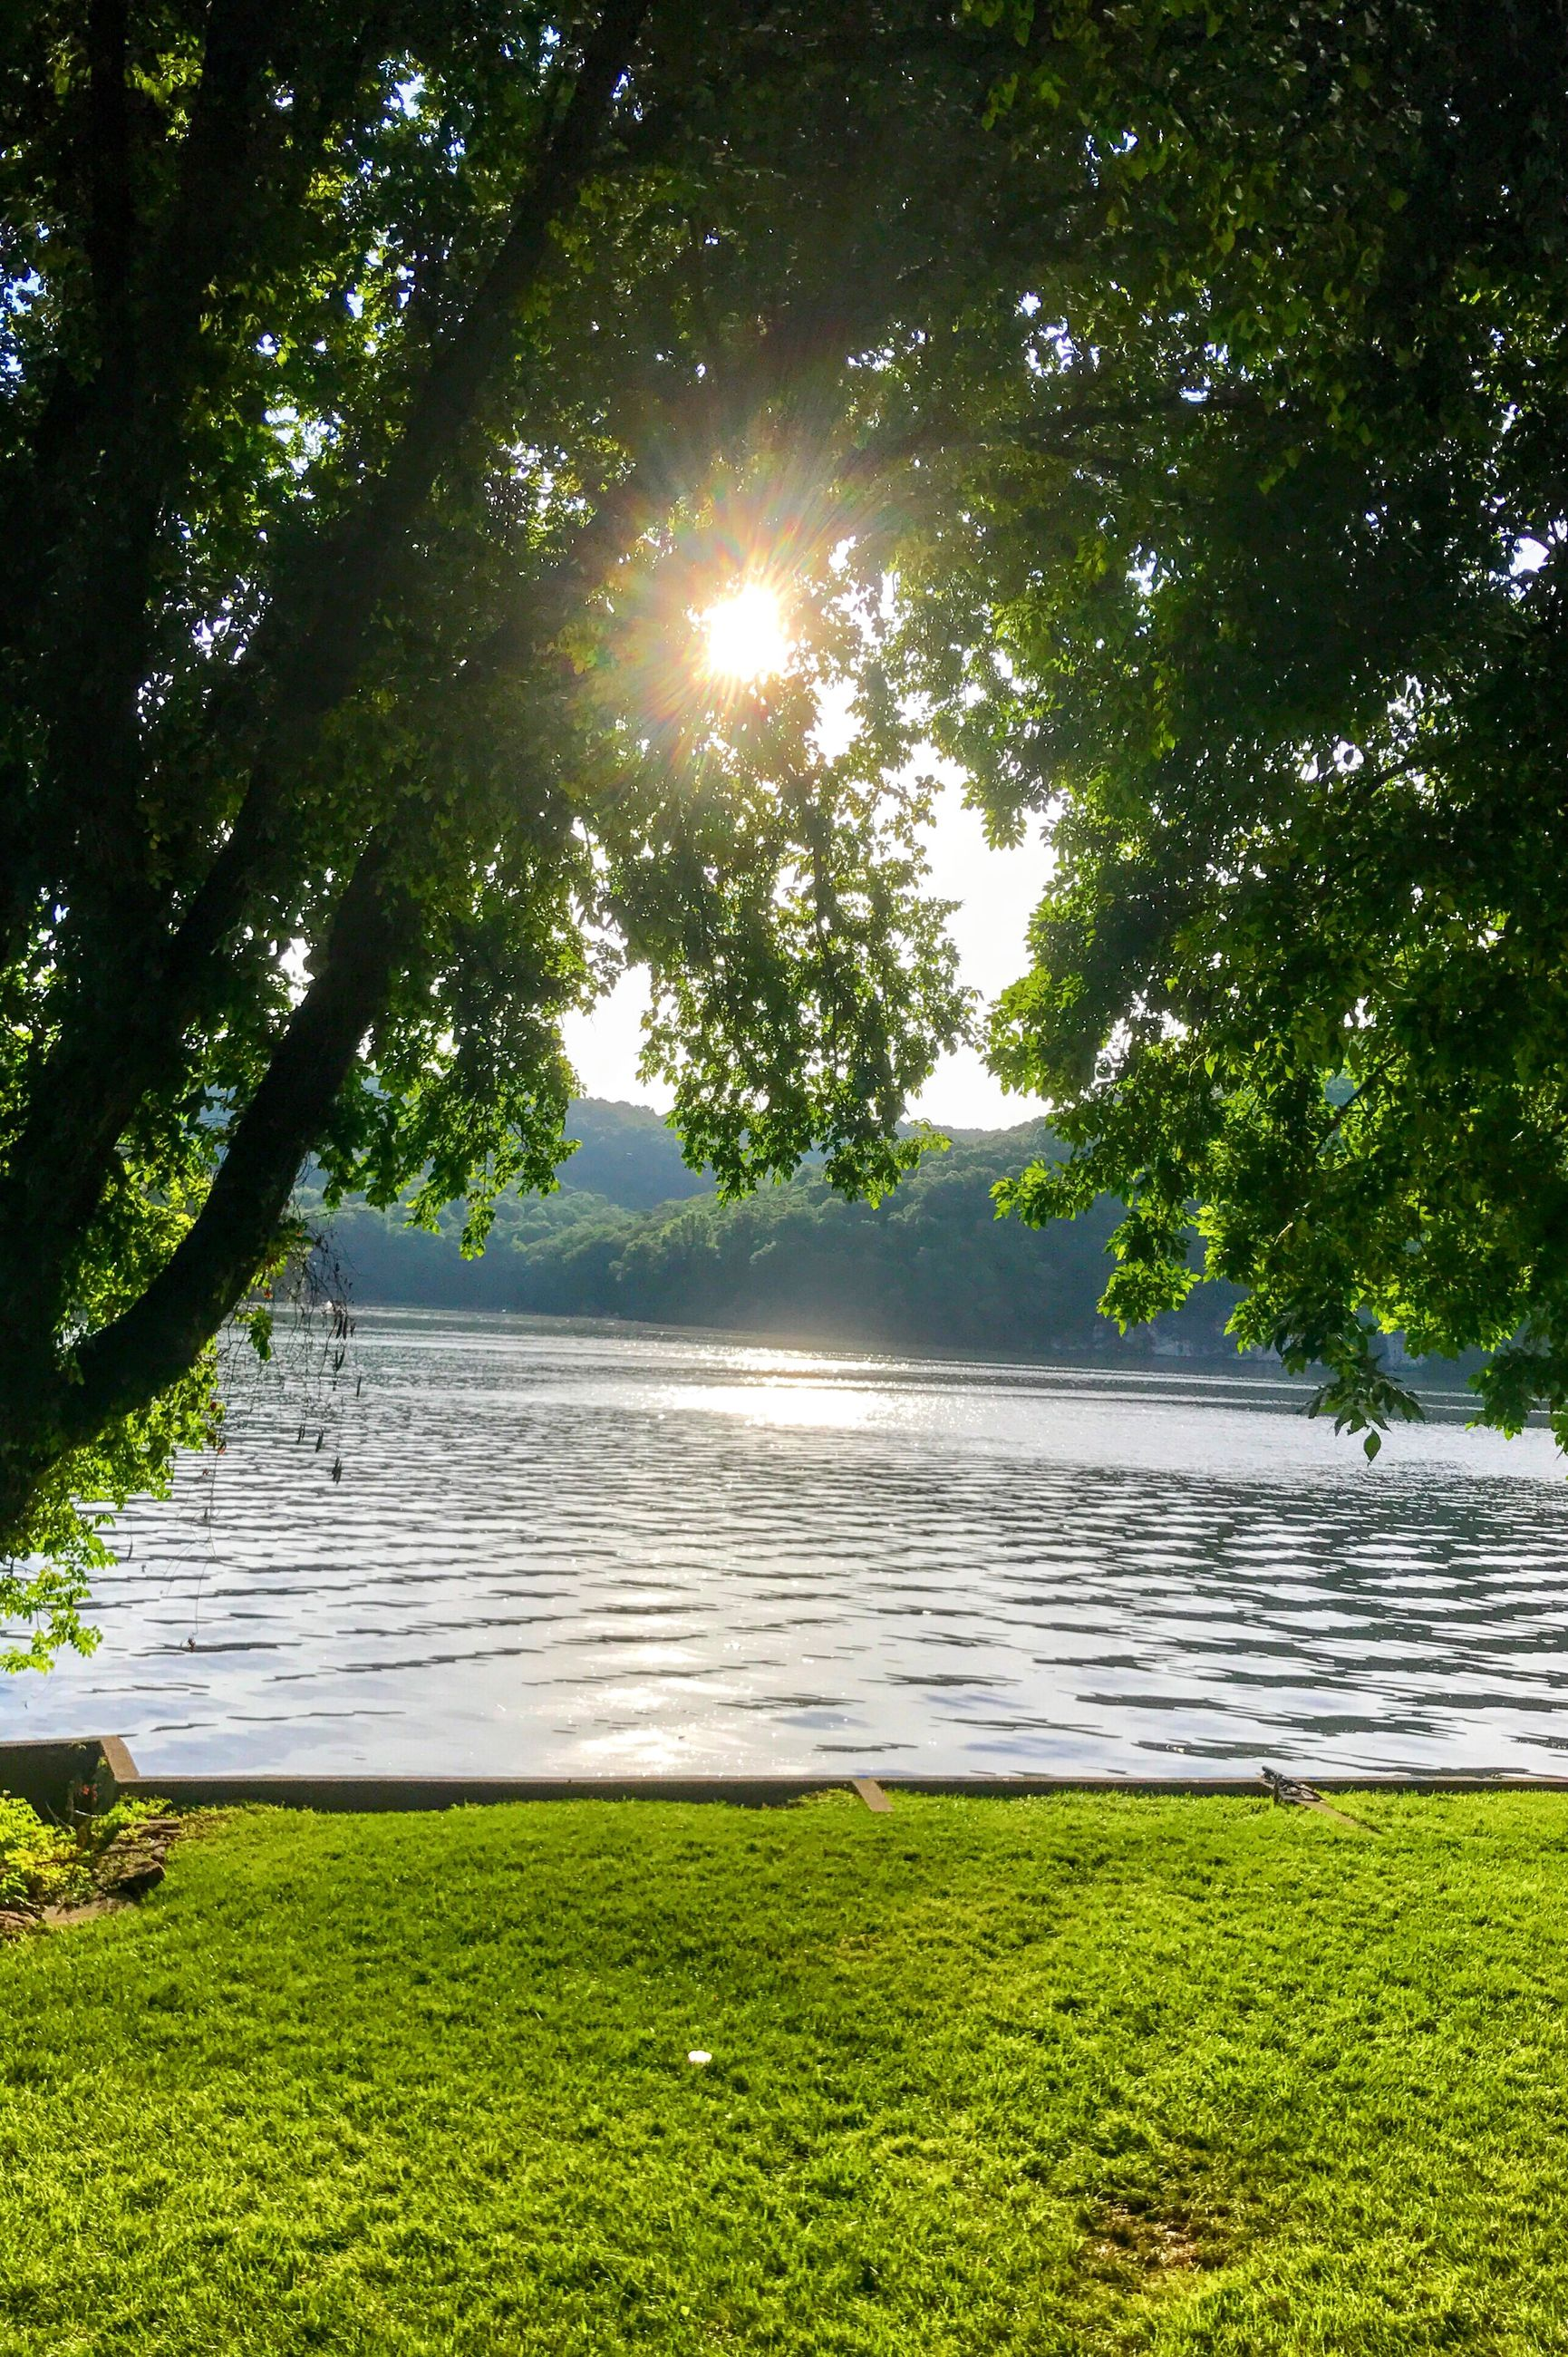 sun, nature, sunbeam, water, tree, lens flare, sunlight, tranquility, green, grass, beauty in nature, scenics, growth, green color, outdoors, no people, day, sea, sky